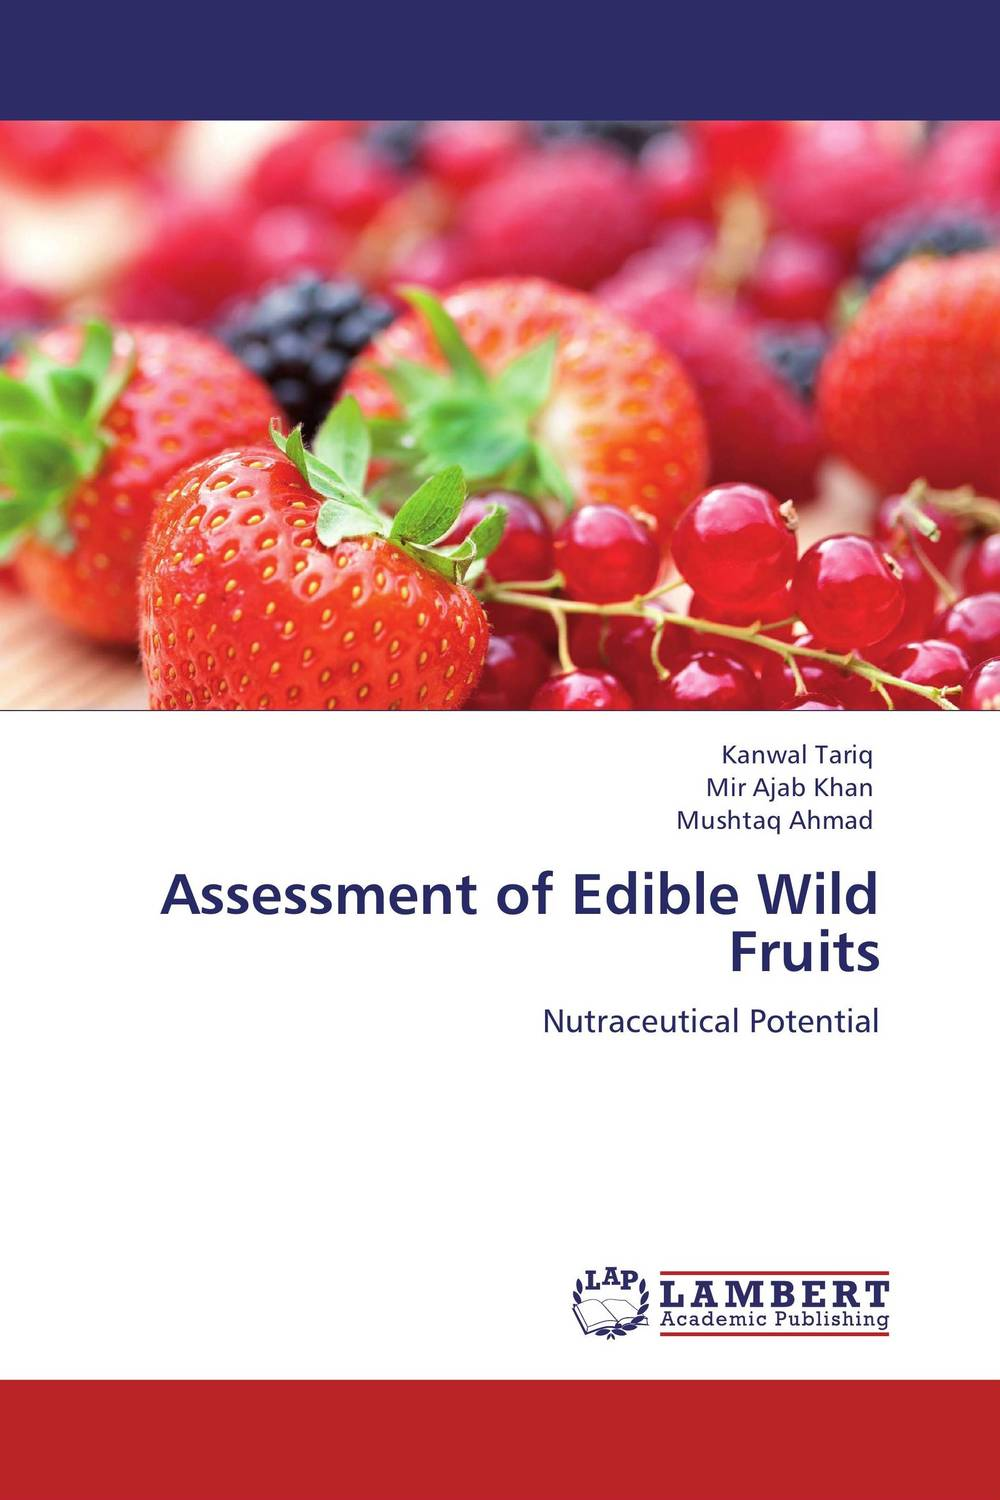 Assessment of Edible Wild Fruits evaluation of lucern as a predator source for wheat aphids